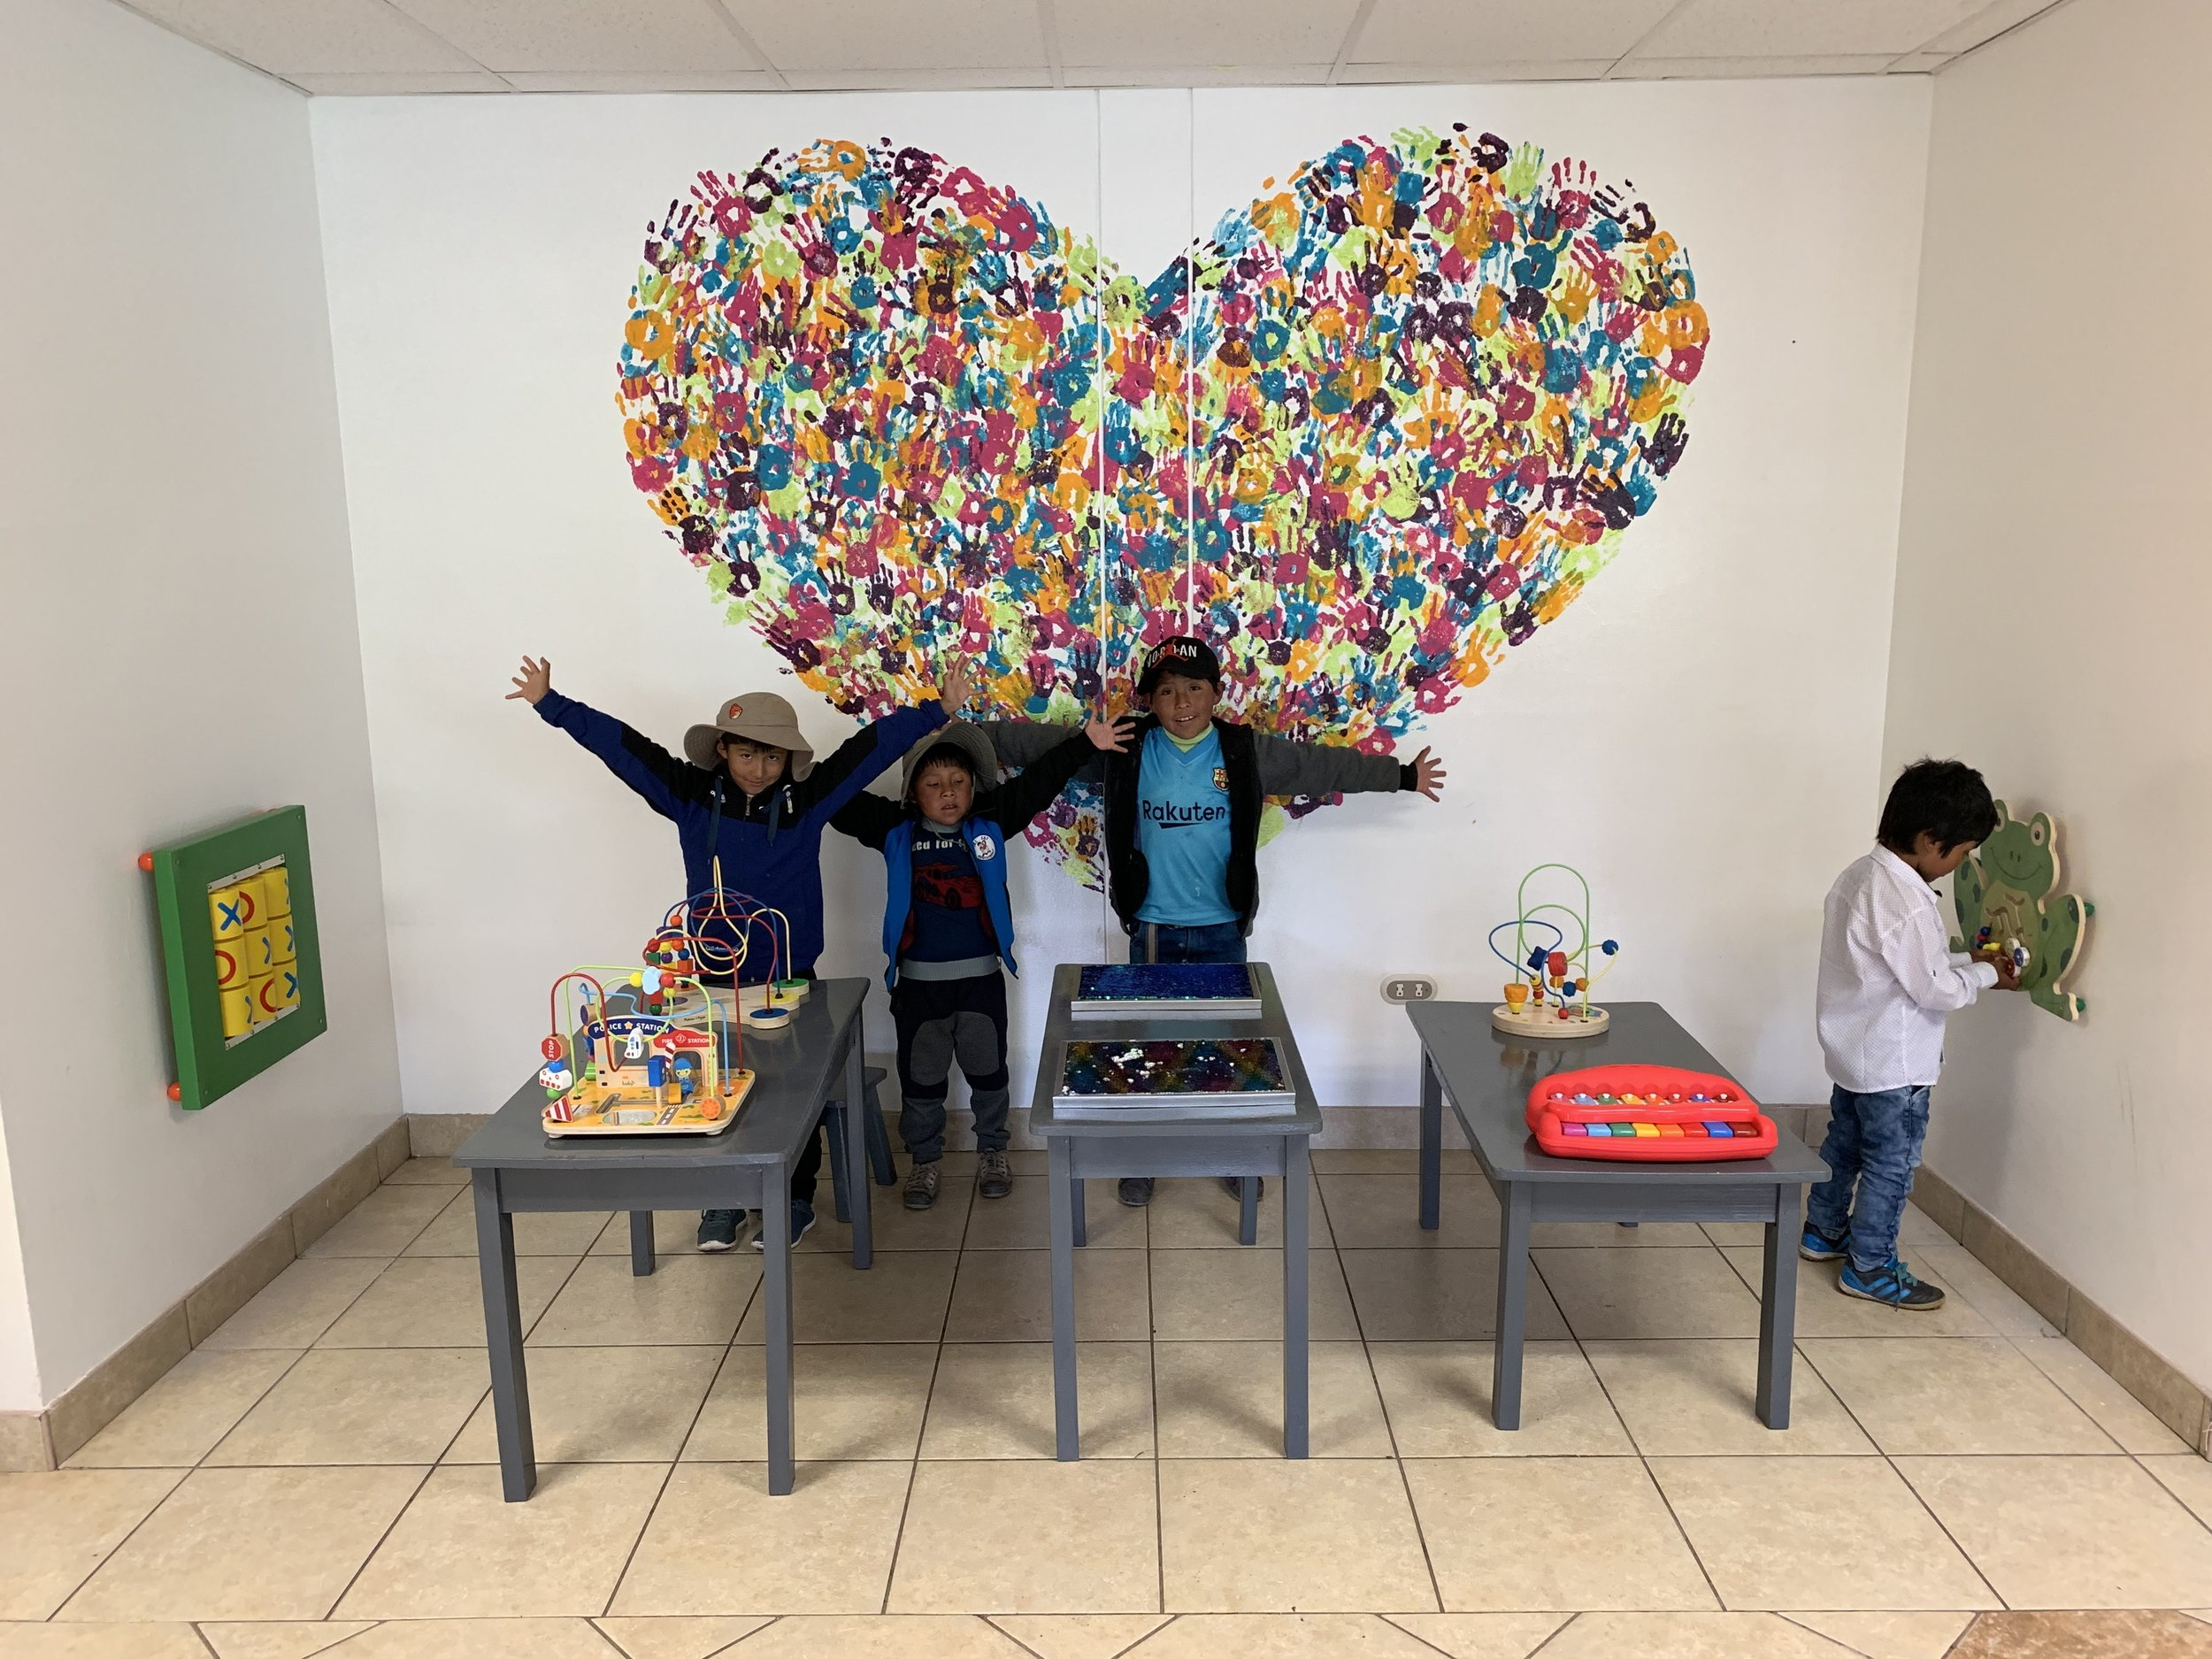 We screwed the toys to the walls and tables and asked some kids to test out the new area!